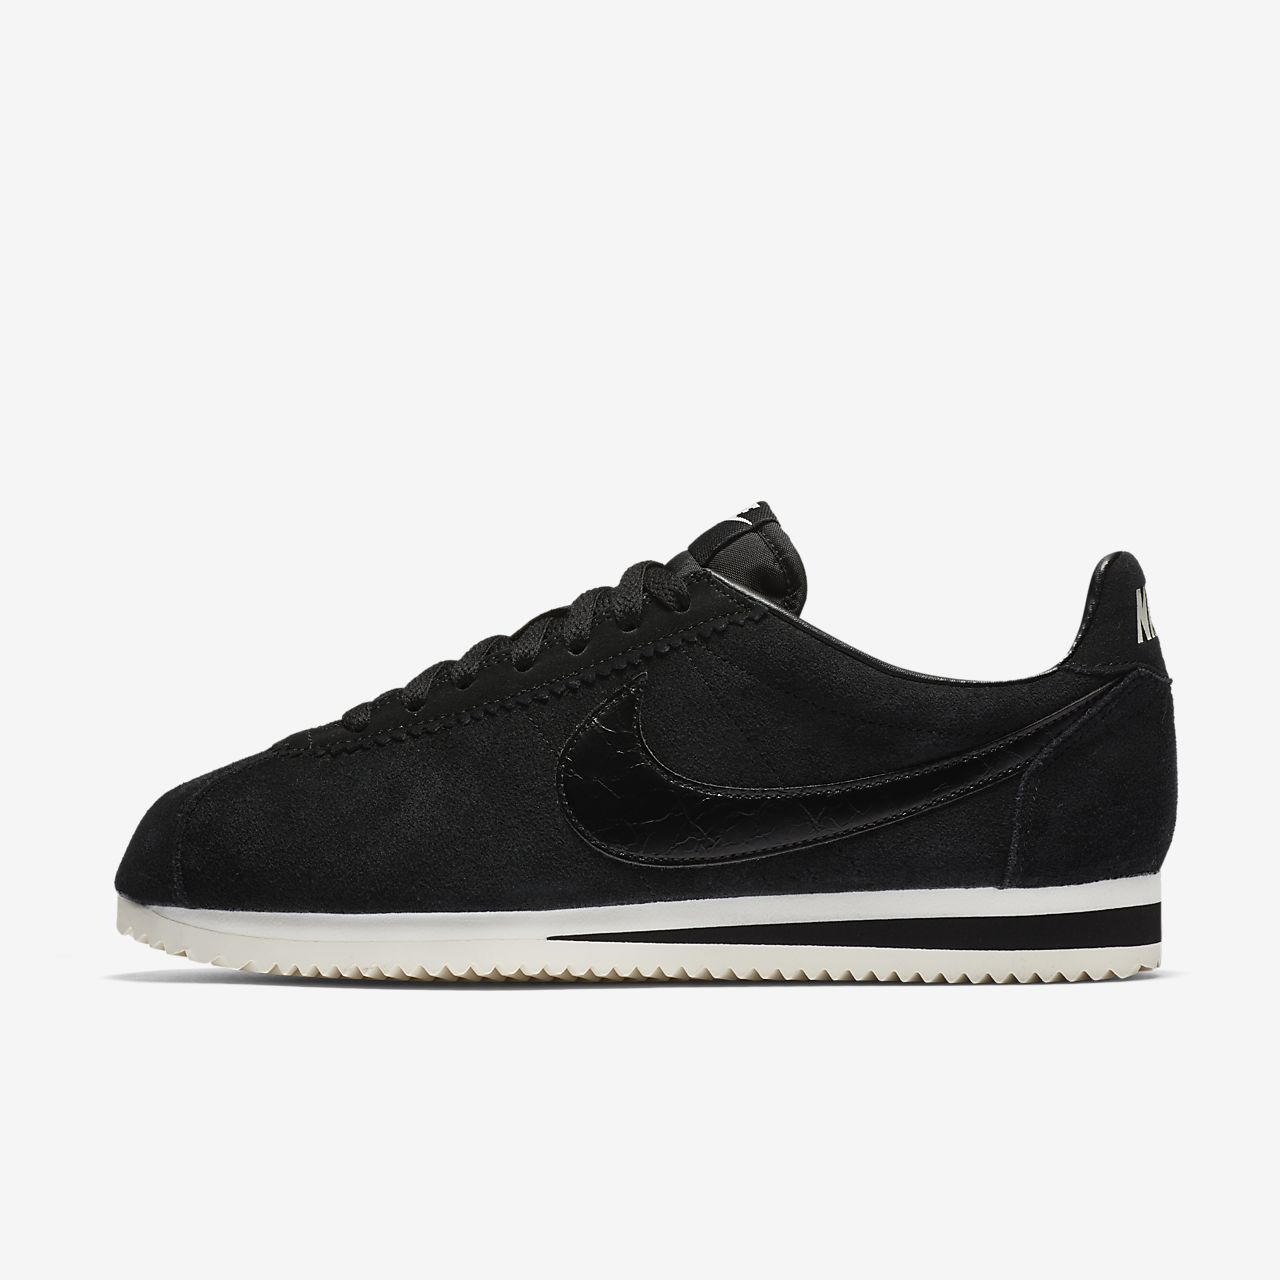 separation shoes f04f3 bf72a ... greece switzerland nike classic cortez suede womens shoe d4fb6 cafef  netherlands cheap womens mens 92f5f e4475 ...